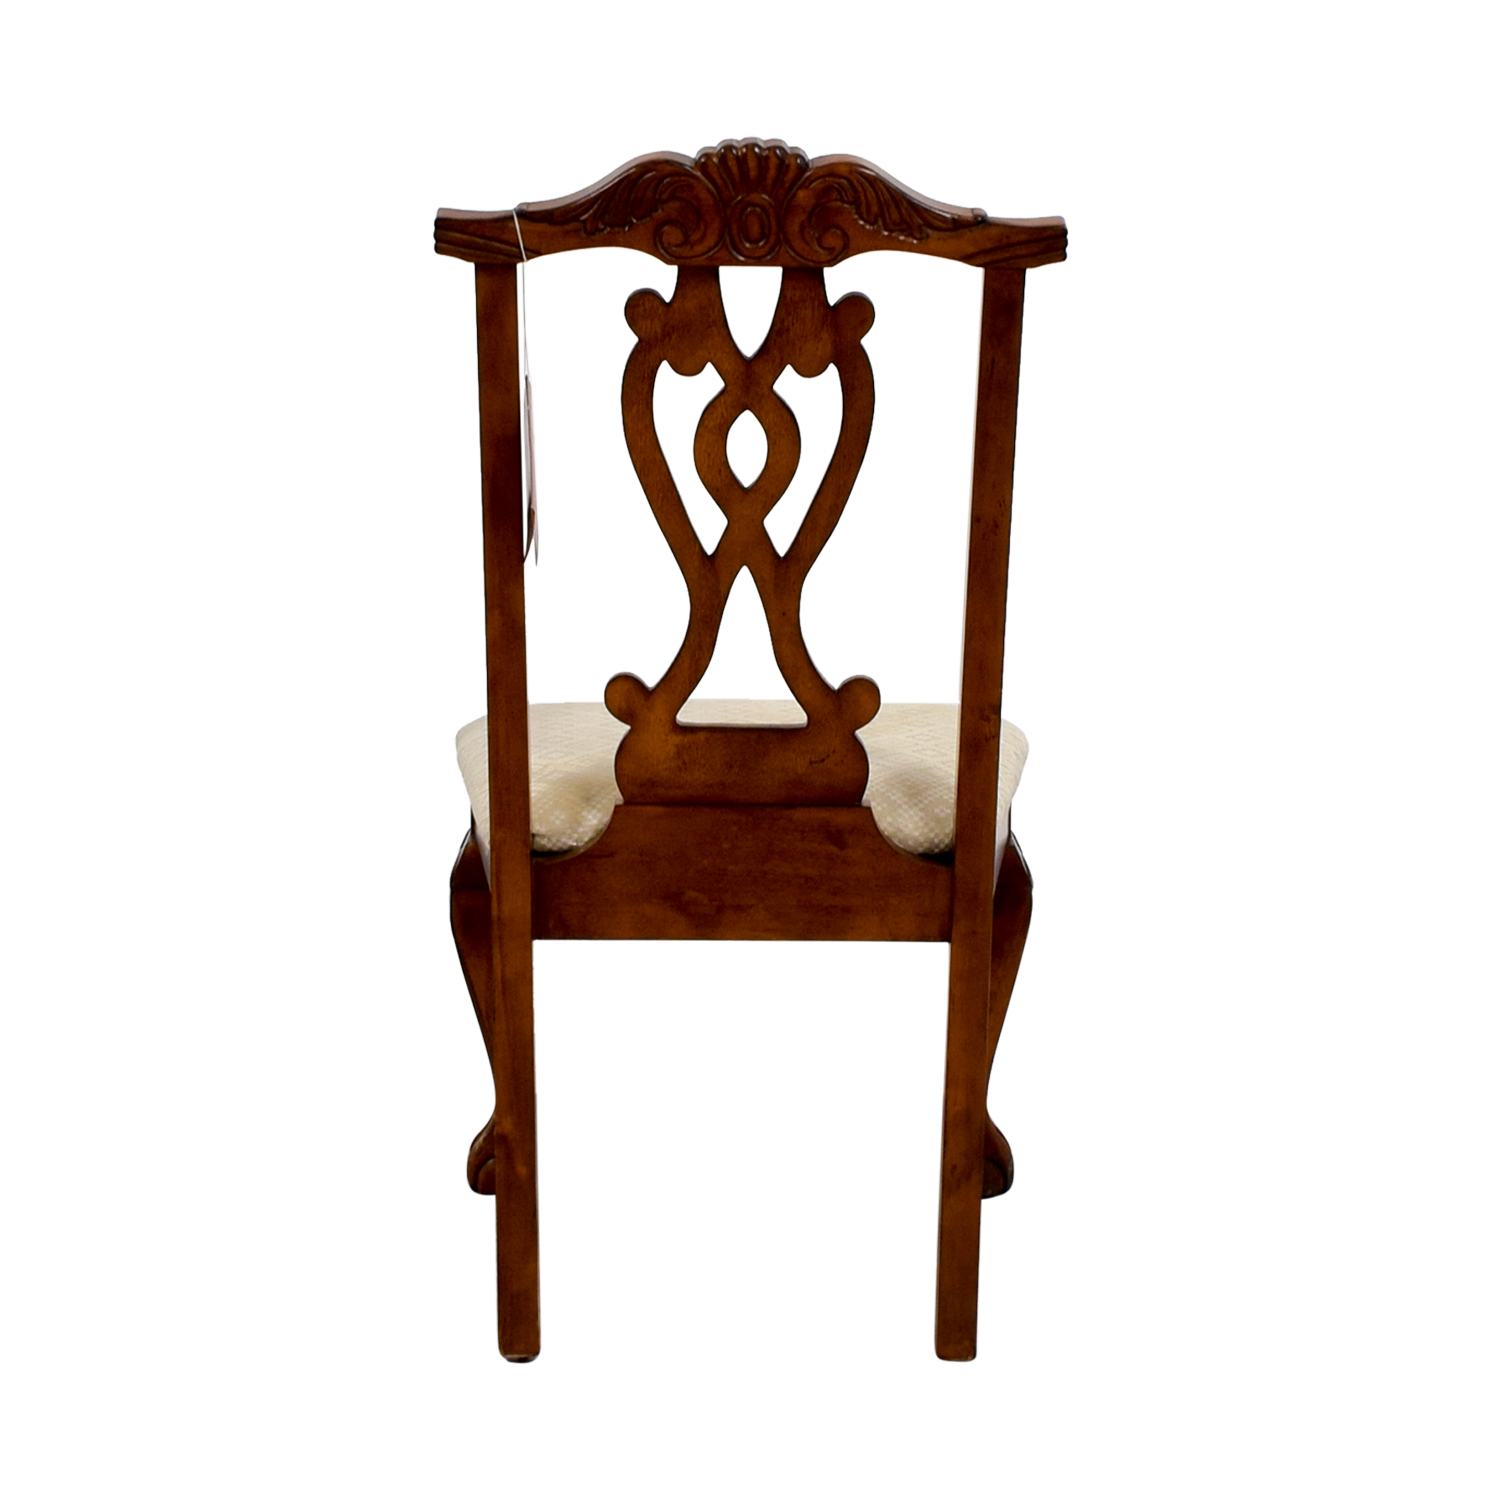 buy Poundex Furniture Poundex Furniture Traditional Wood and Off White Chair online